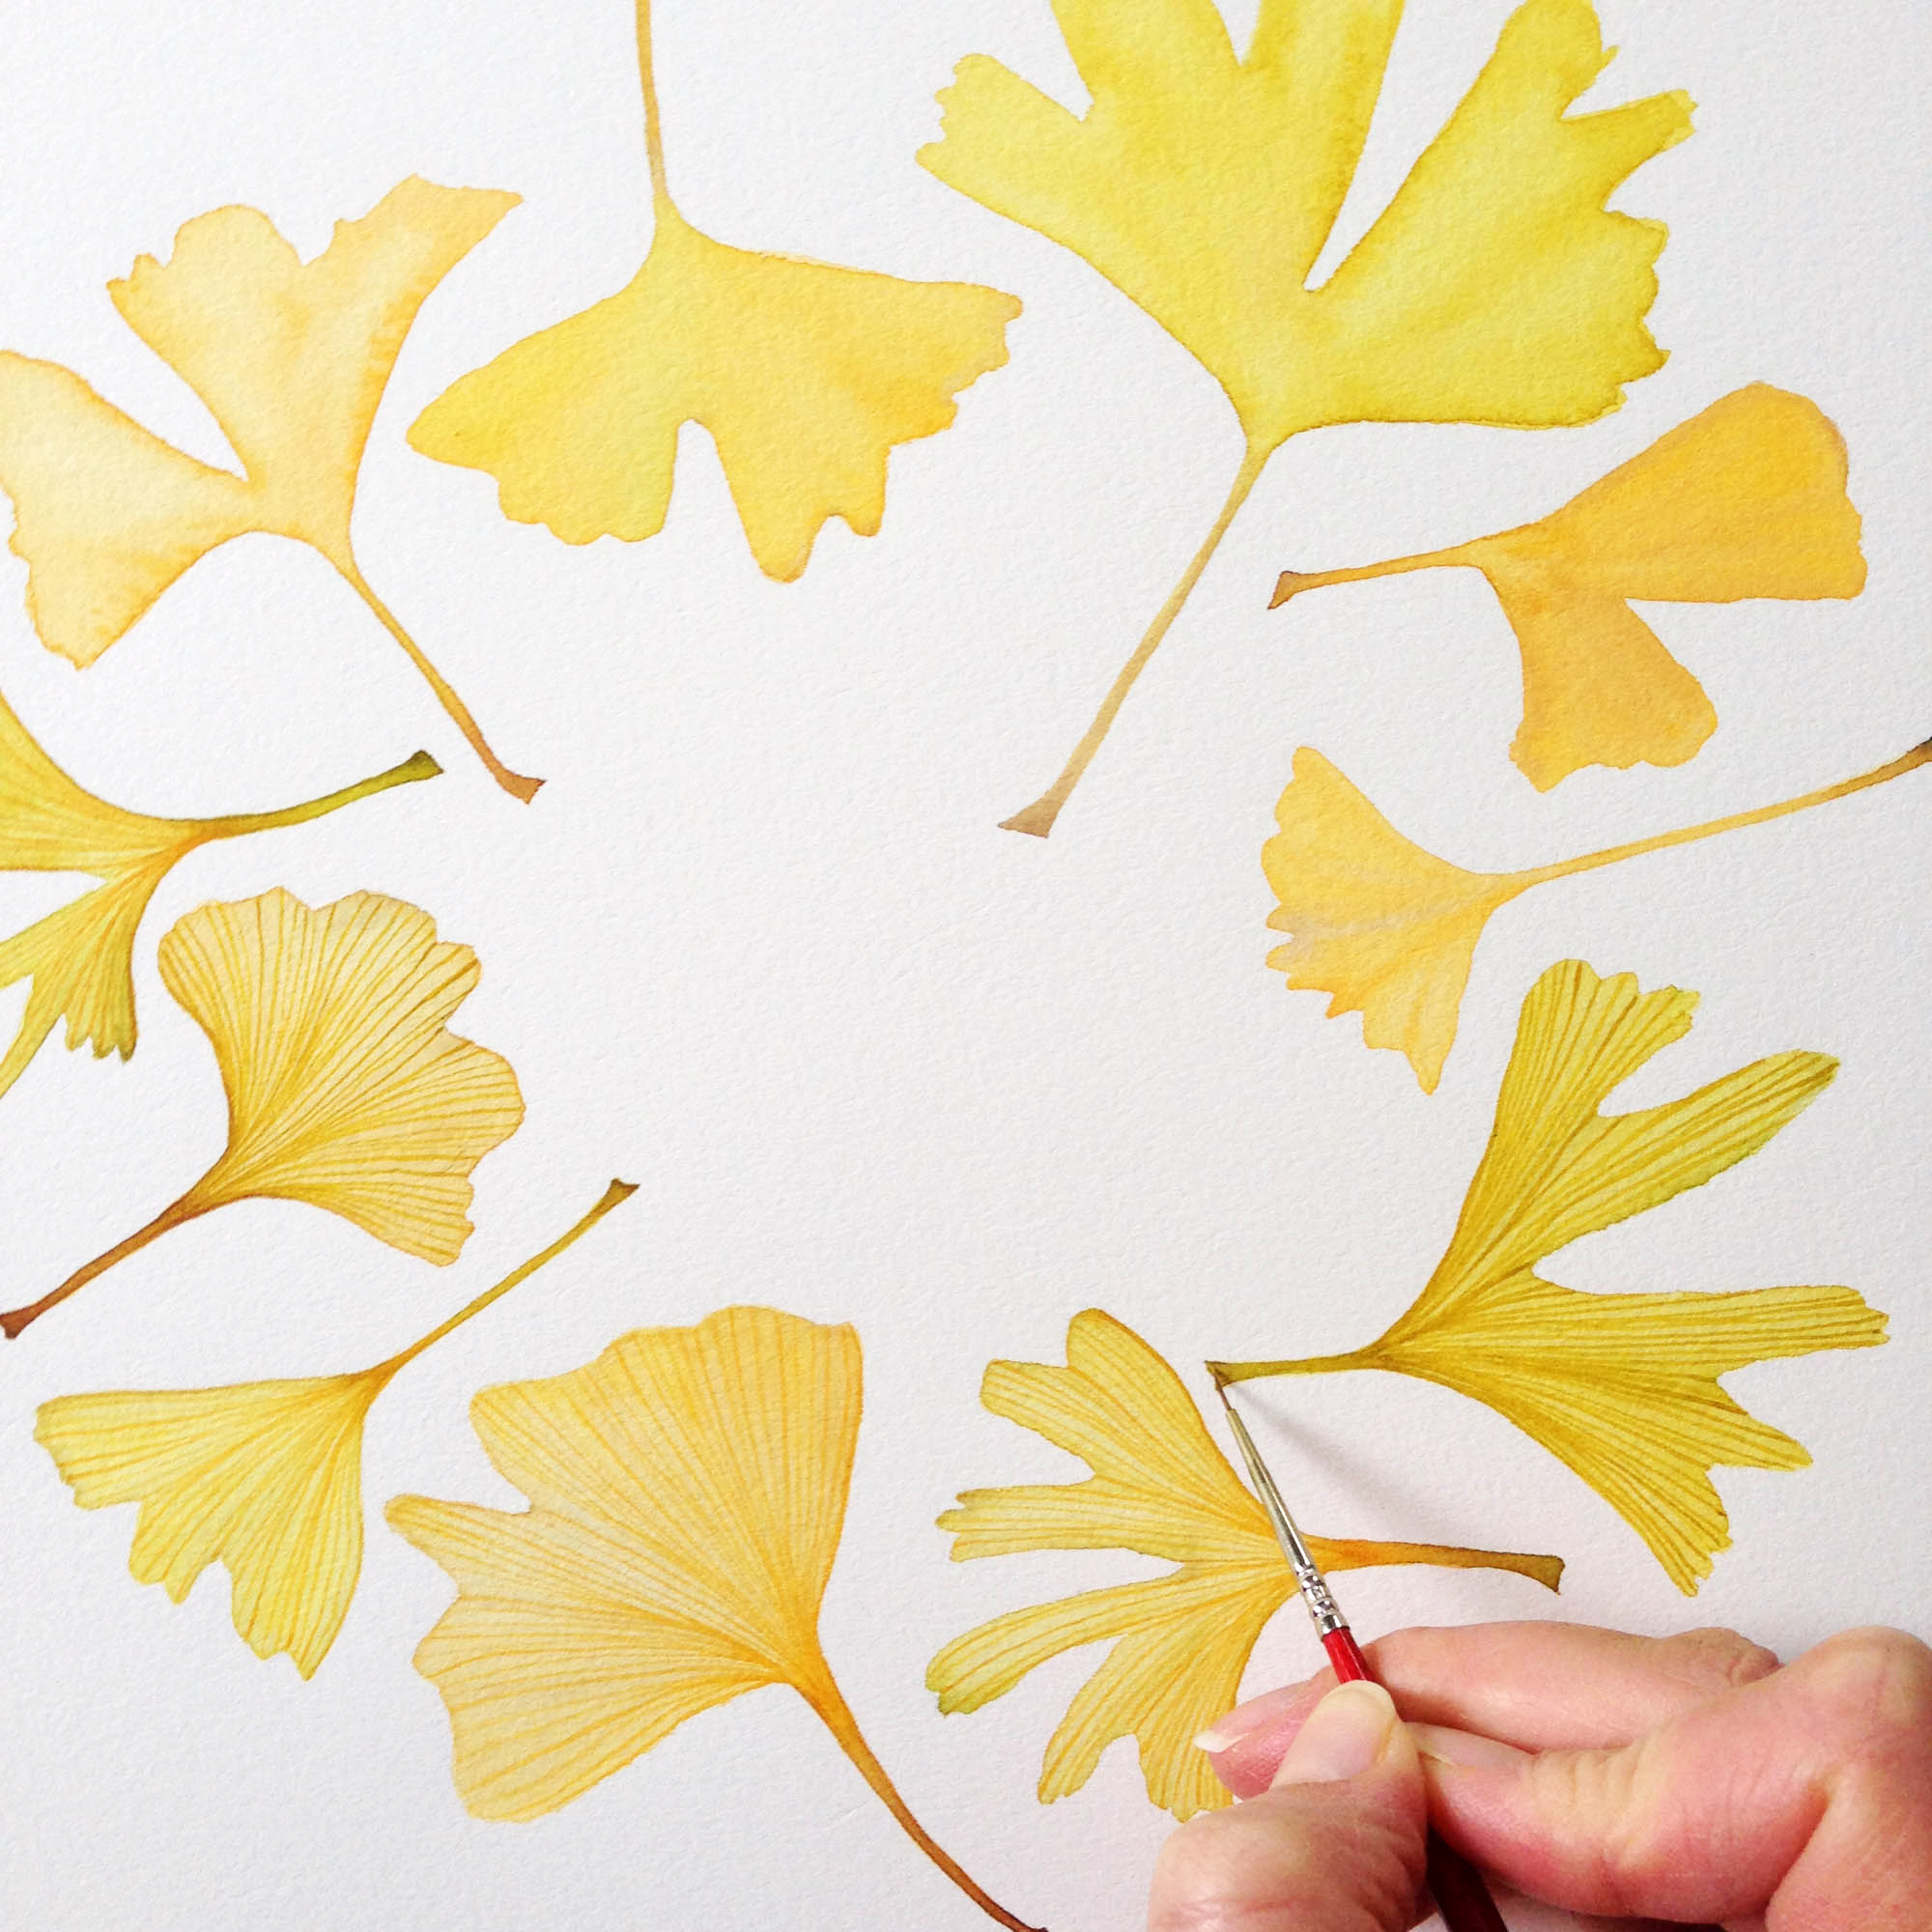 Watercolor Gingko Leaf Painting in Process